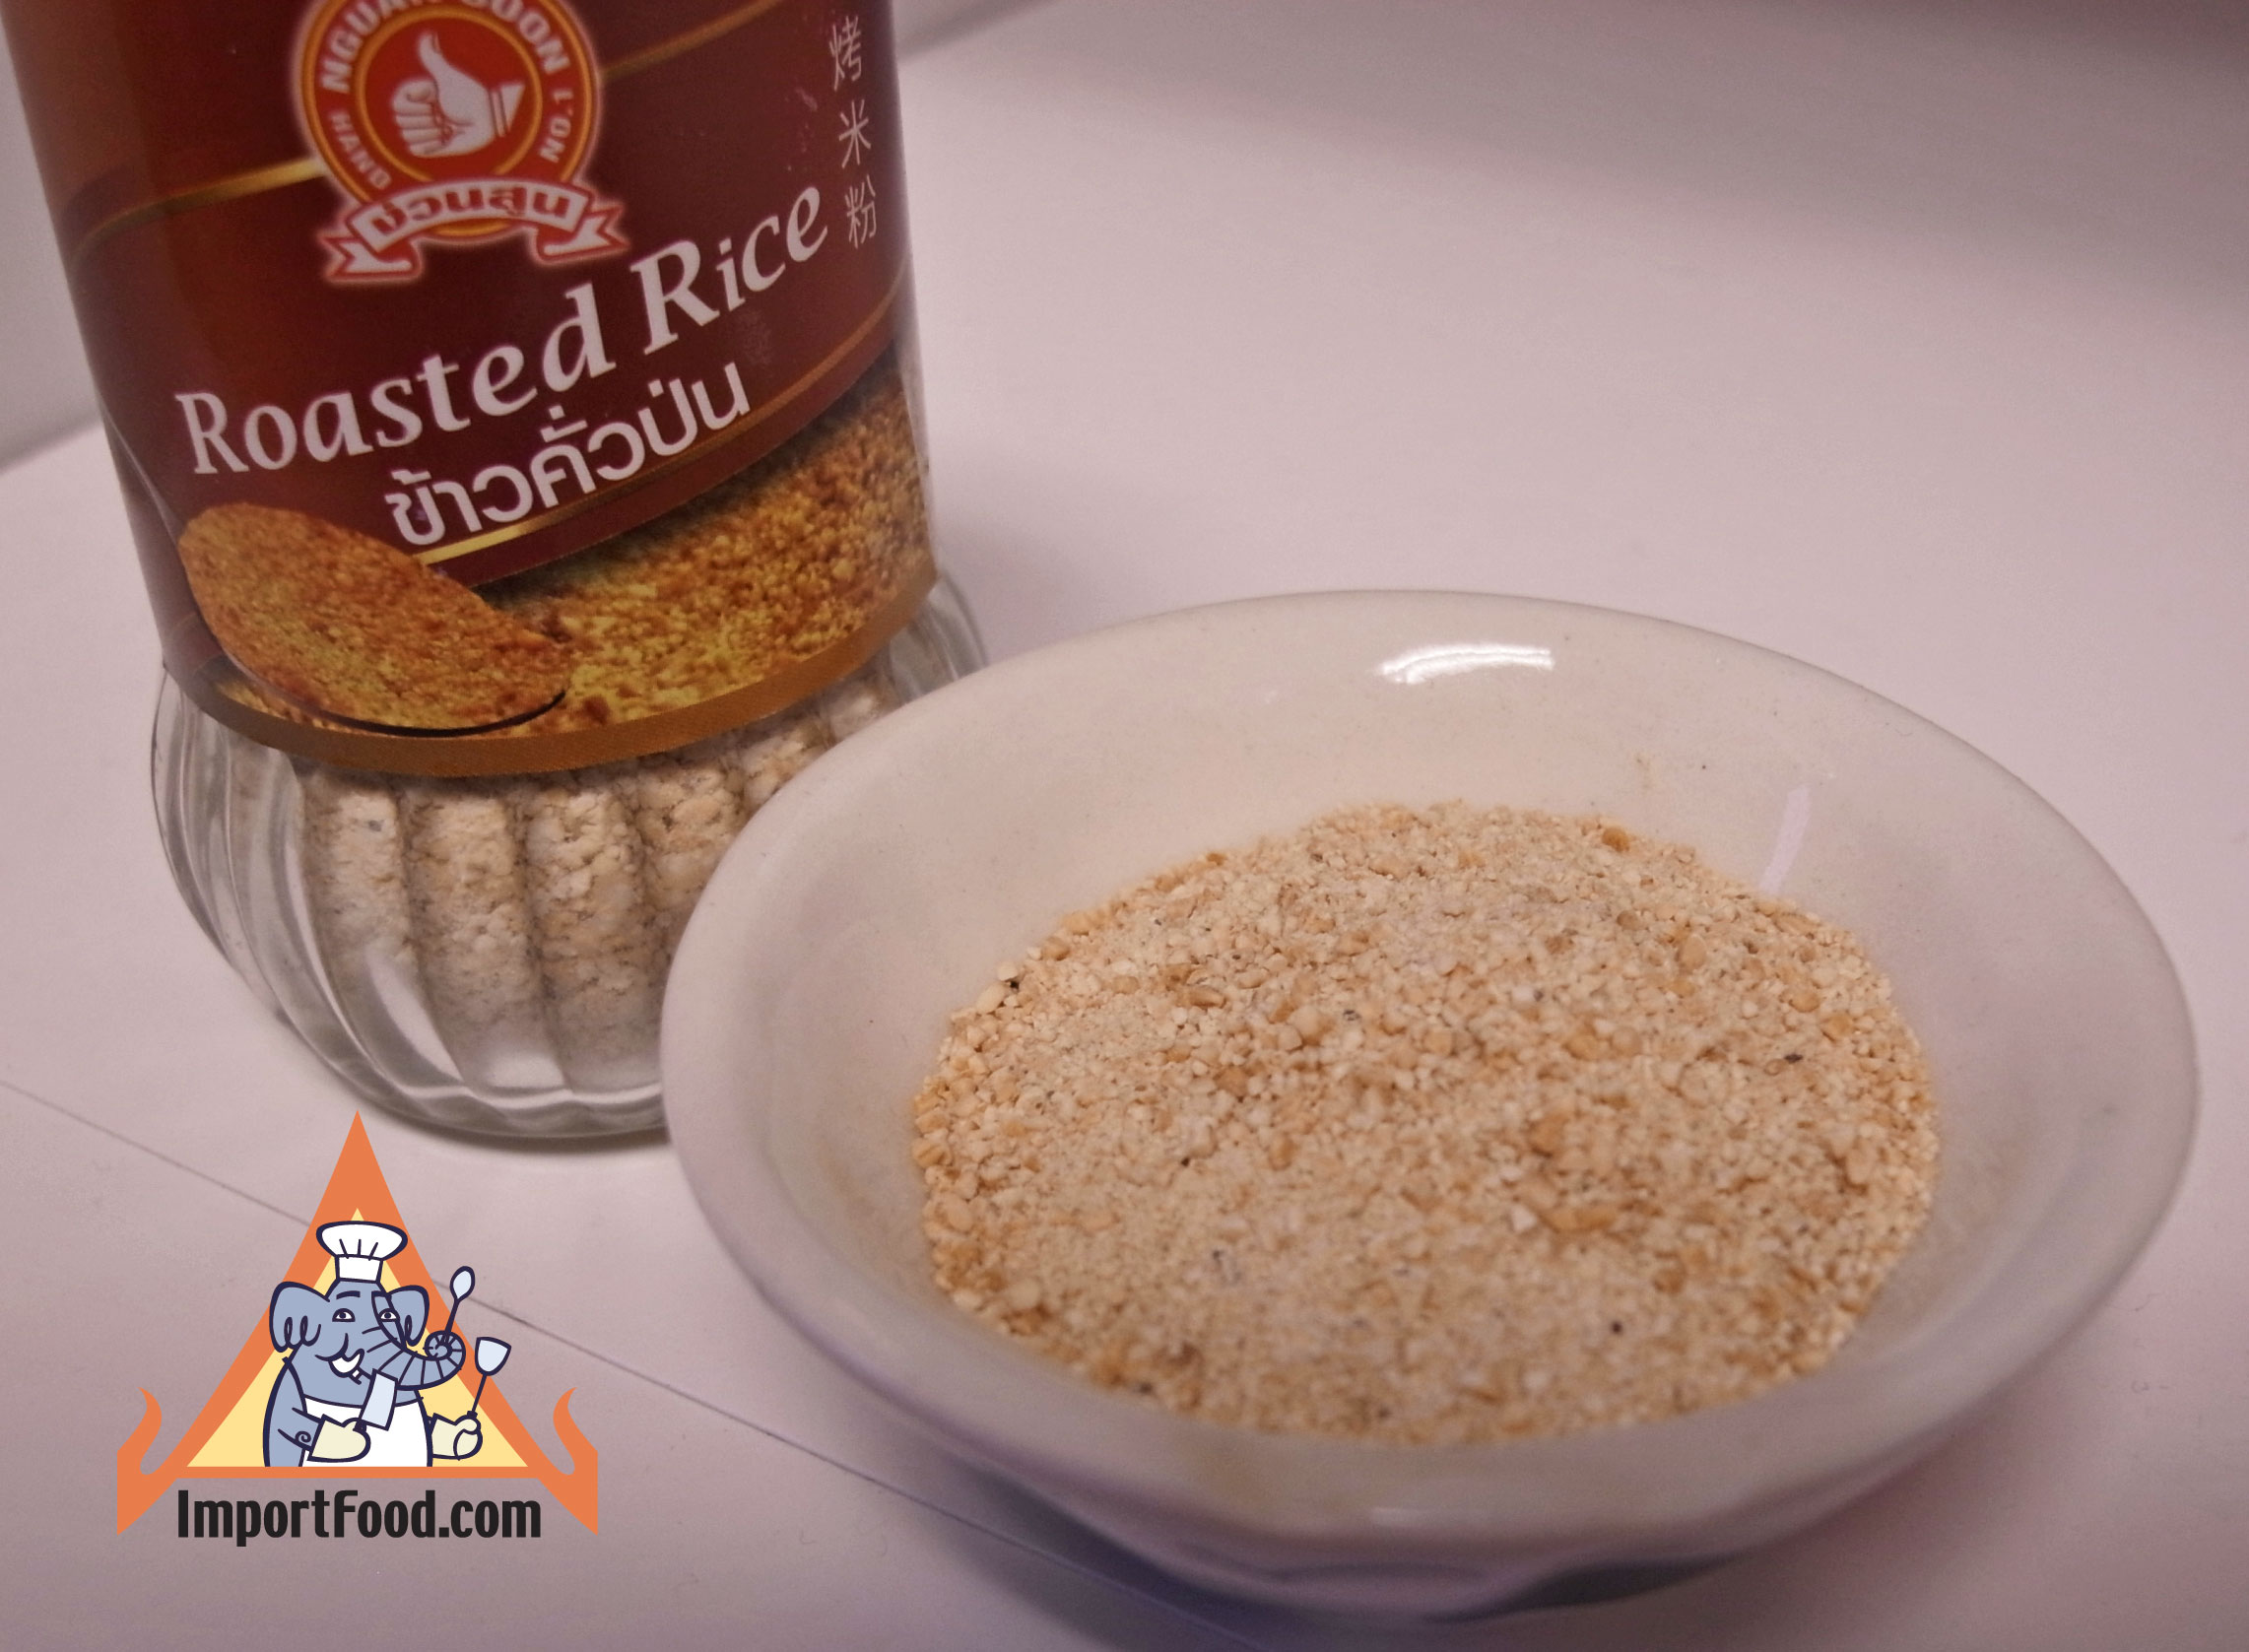 Roasted Rice Powder, Khao Koor, available online from